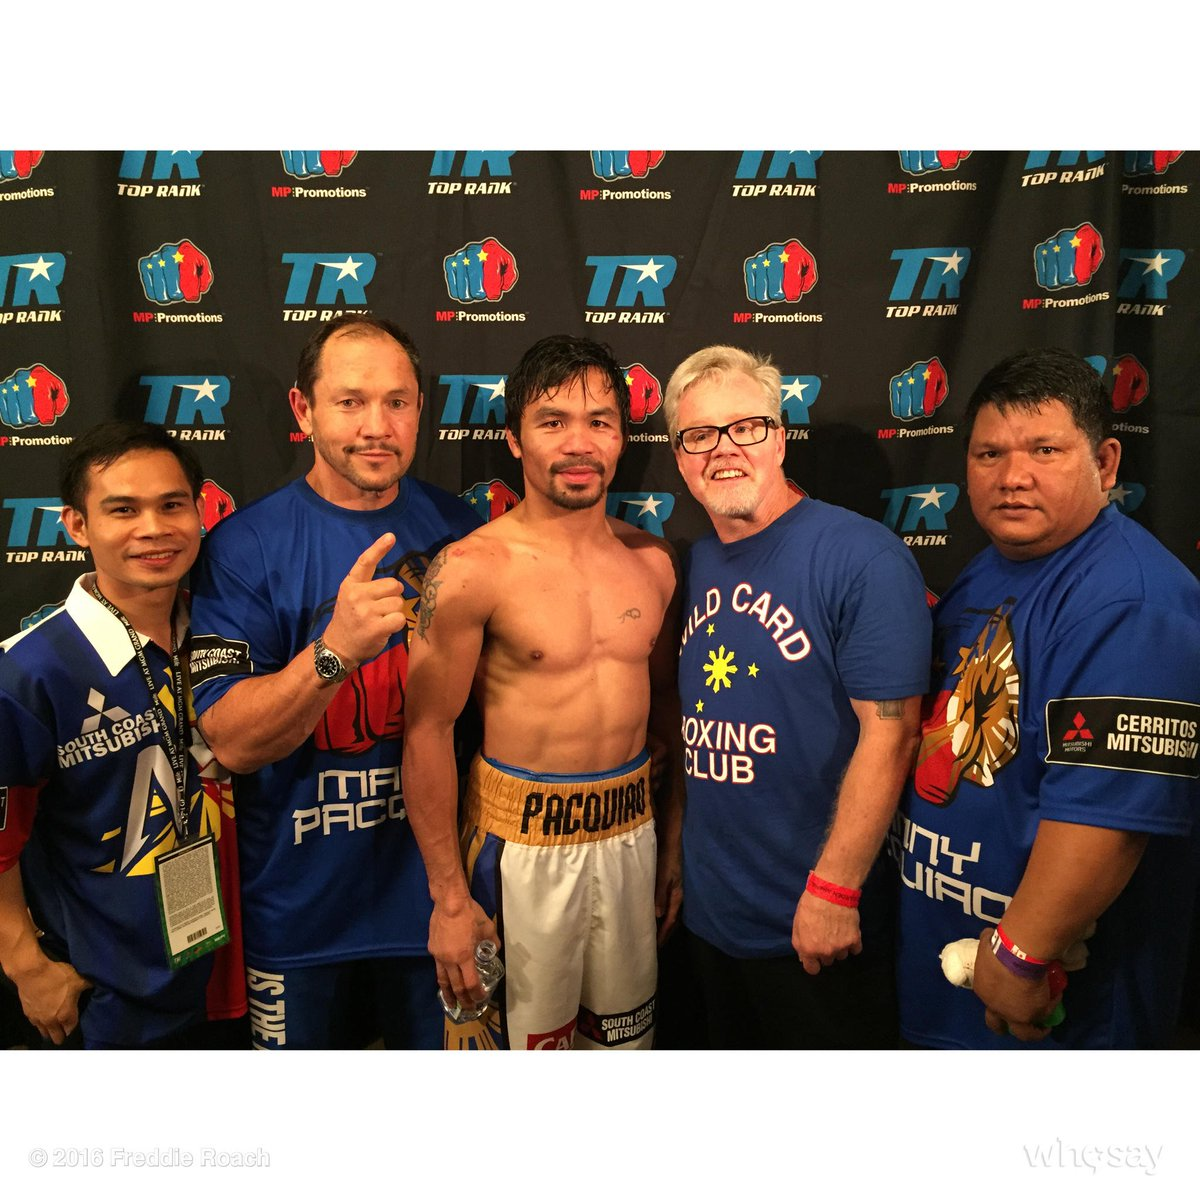 We won #TeamPacquiao @MannyPacquiaoTR @MannyPacquiao @TooFred #PacquaioBradley3 #WildCardBoxing https://t.co/b30qqj99fP